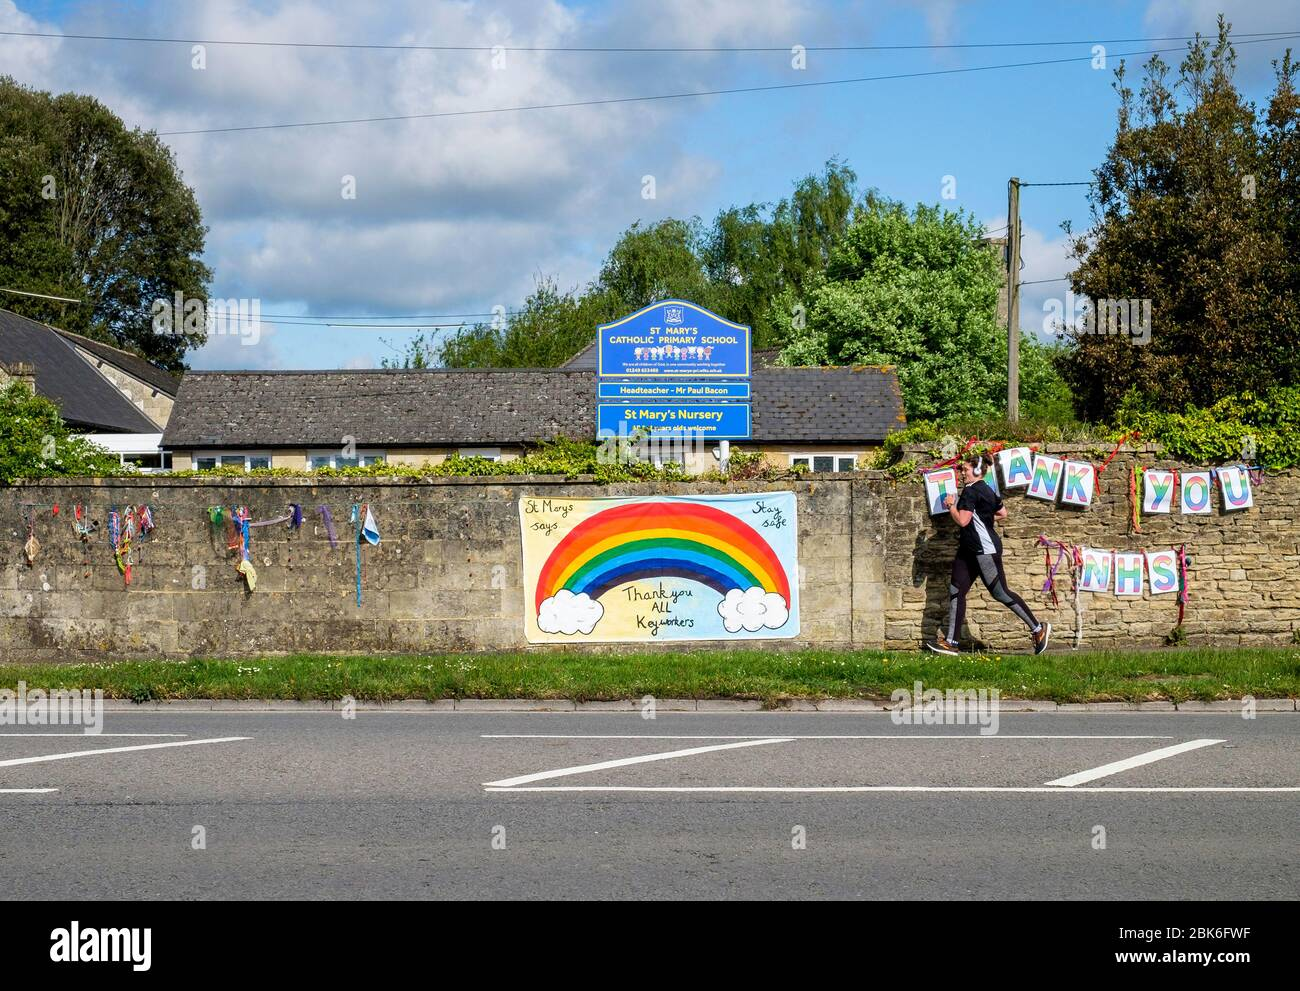 Chippenham, Wiltshire UK, 2nd May, 2020. A person out running is pictured as they run past 'thank you NHS' and 'thank you all key workers' signs that have been hung on a primary school wall opposite Chippenham Hospital. Credit: Lynchpics/Alamy Live News Stock Photo